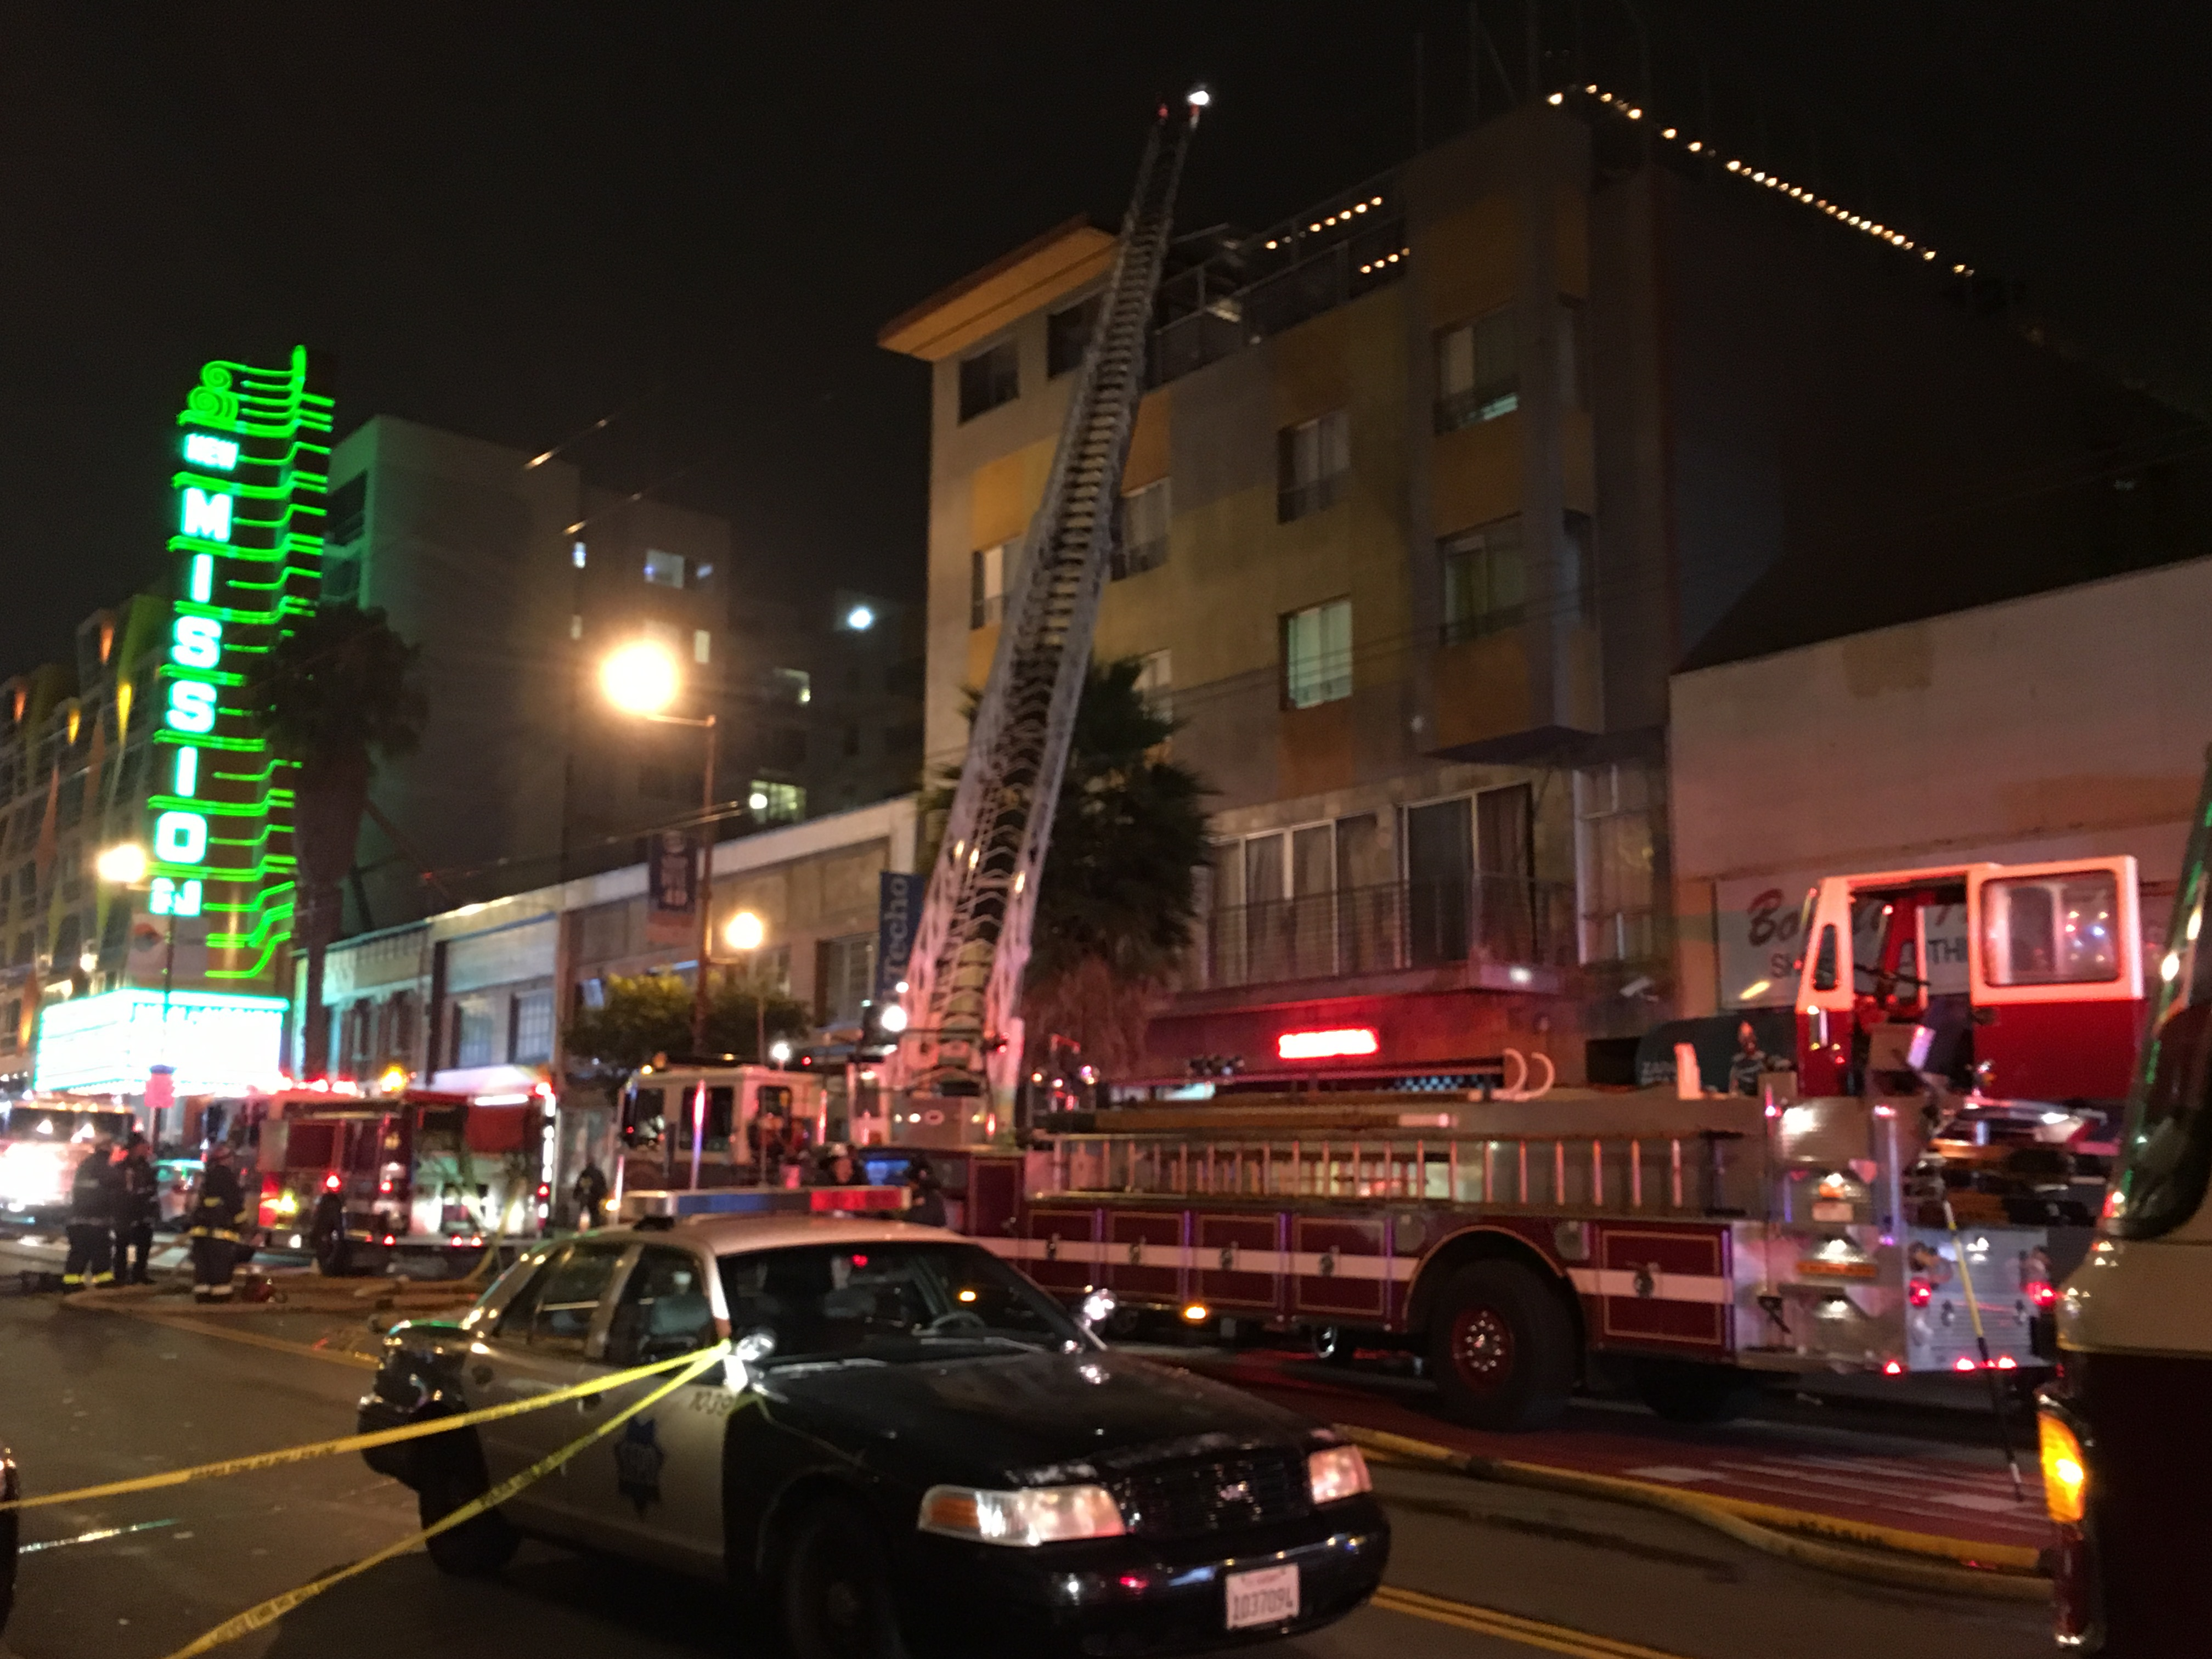 Small Fire at Lolinda Restaurant in Mission District